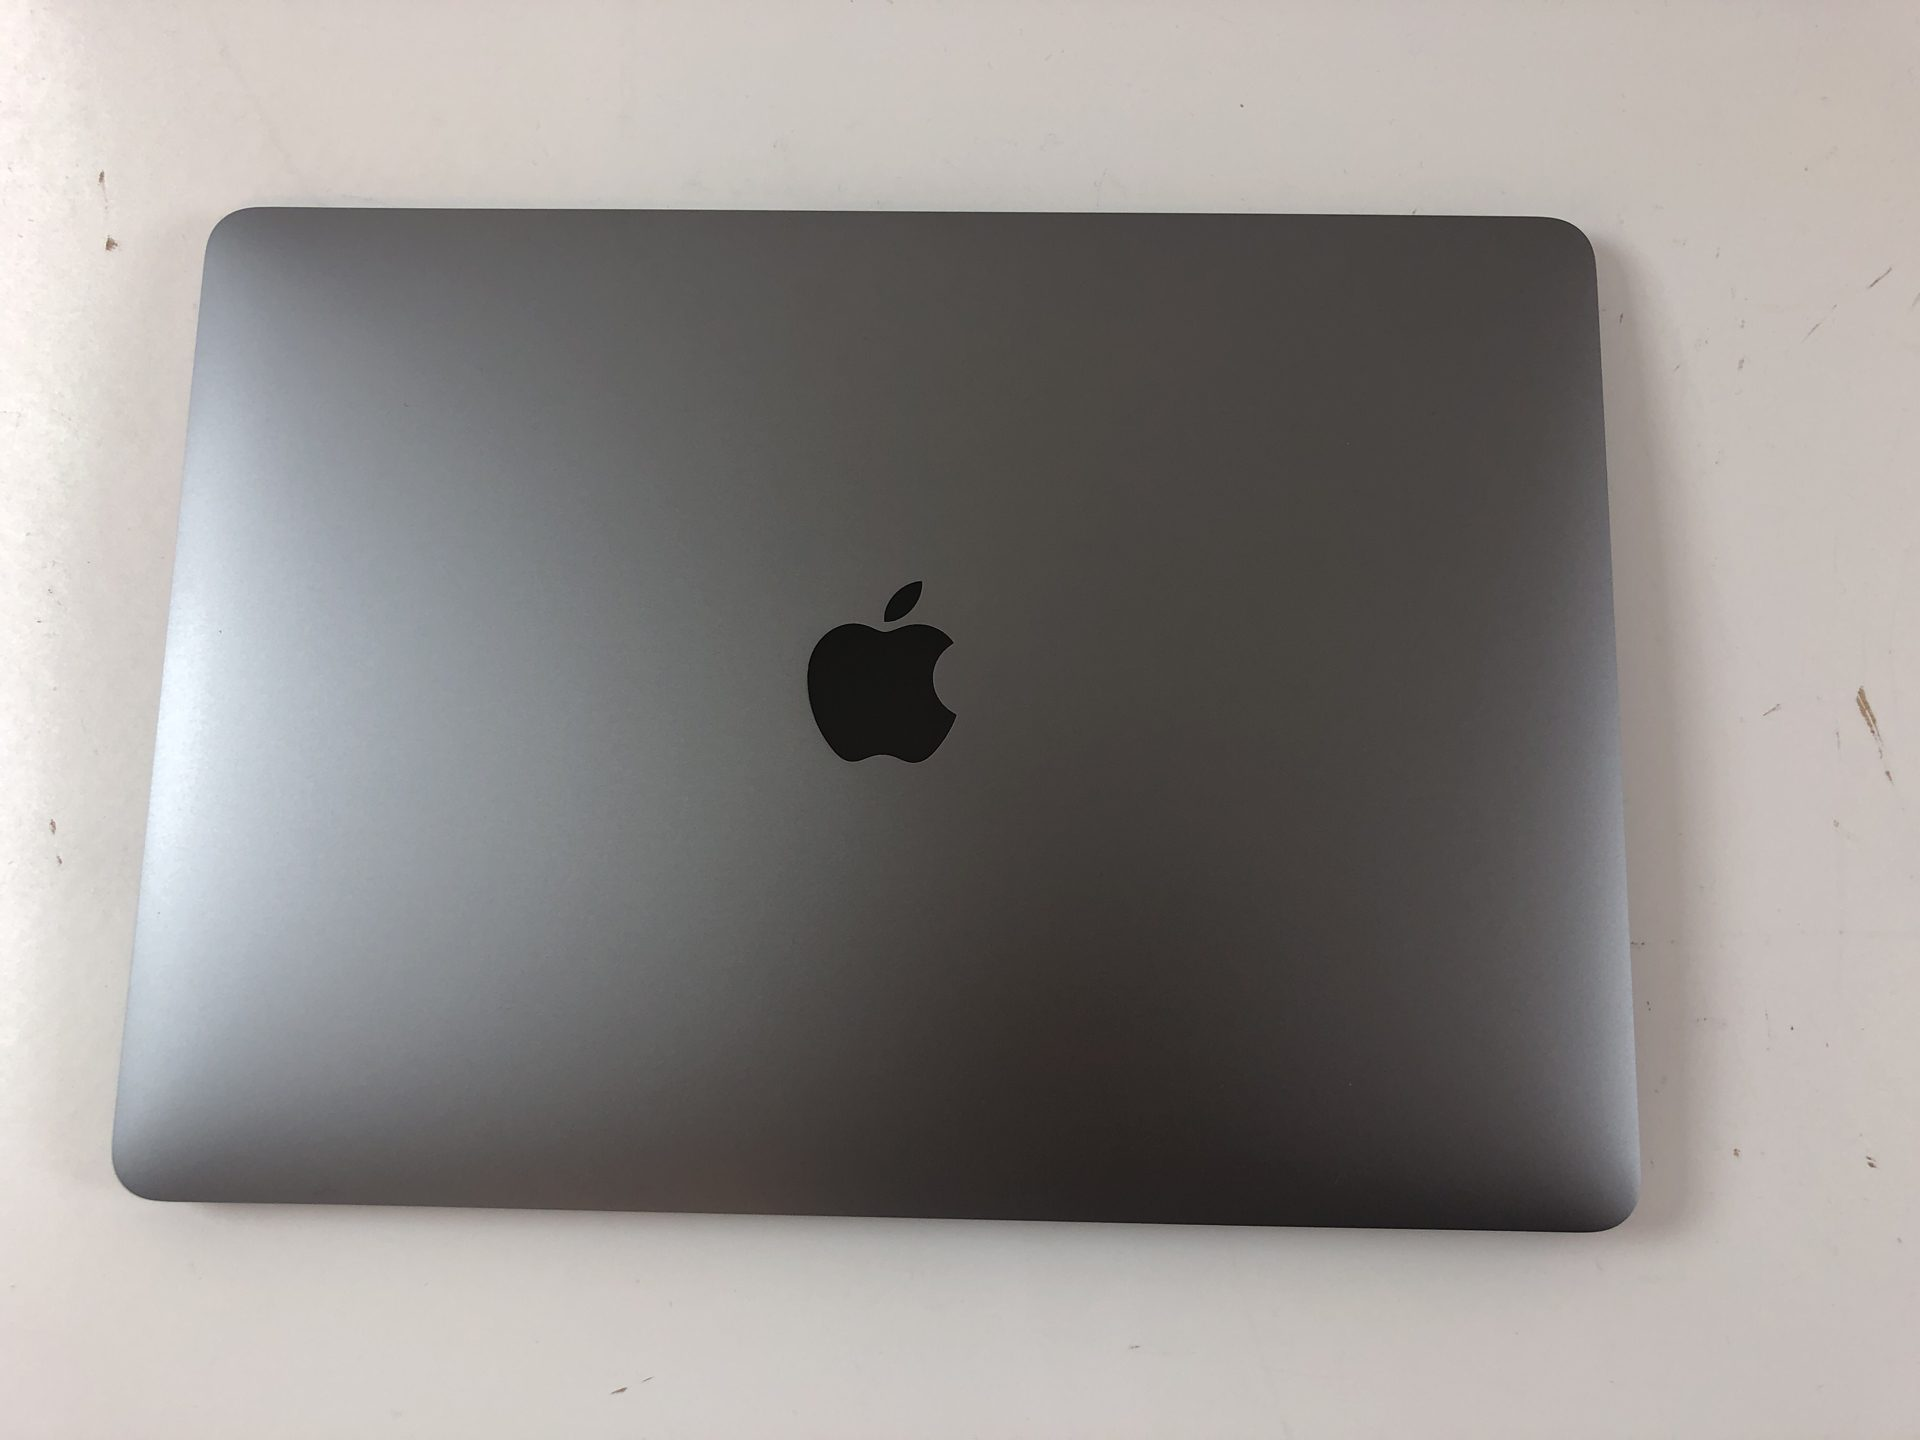 "MacBook Pro 13"" 4TBT Mid 2019 (Intel Quad-Core i5 2.4 GHz 8 GB RAM 256 GB SSD), Space Gray, Intel Quad-Core i5 2.4 GHz, 8 GB RAM, 256 GB SSD, Kuva 2"